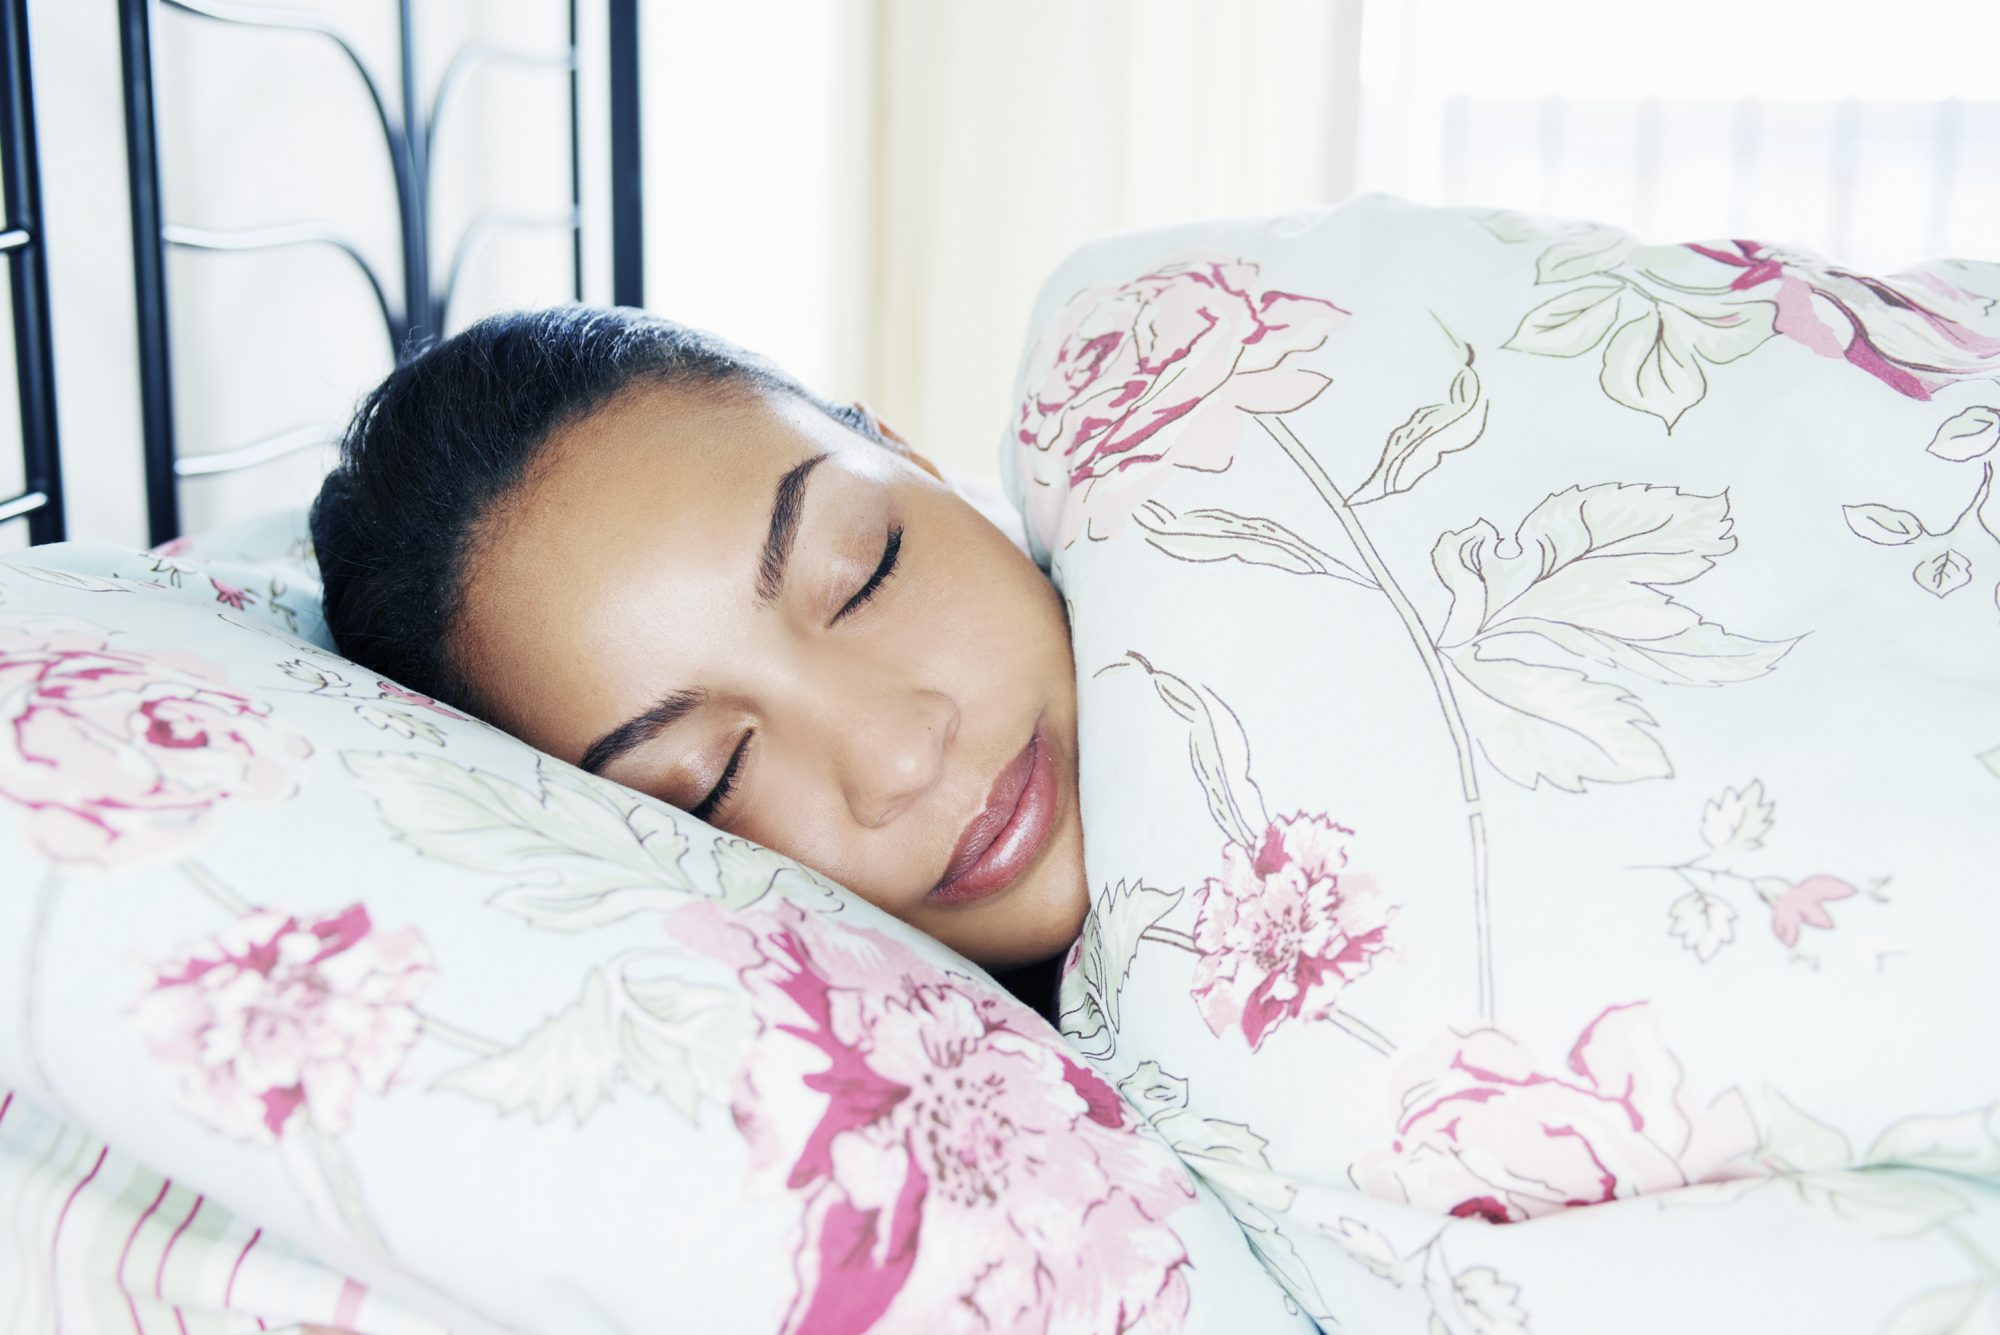 portrait of young woman asleep in bed